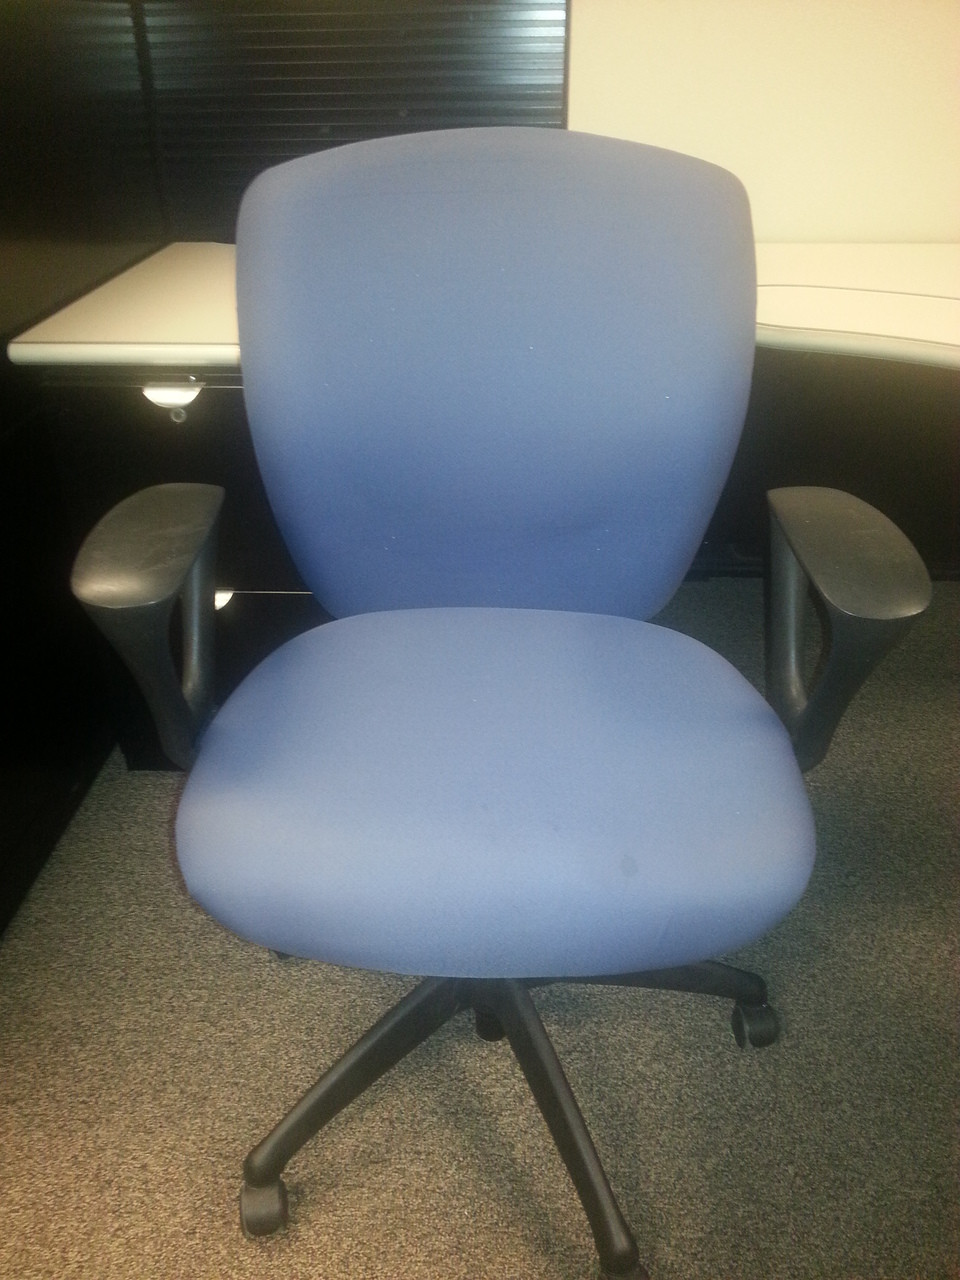 Work Chair 158 Used Sitonit Non Stop Heavy Duty Work Chair With 500lb Capacity